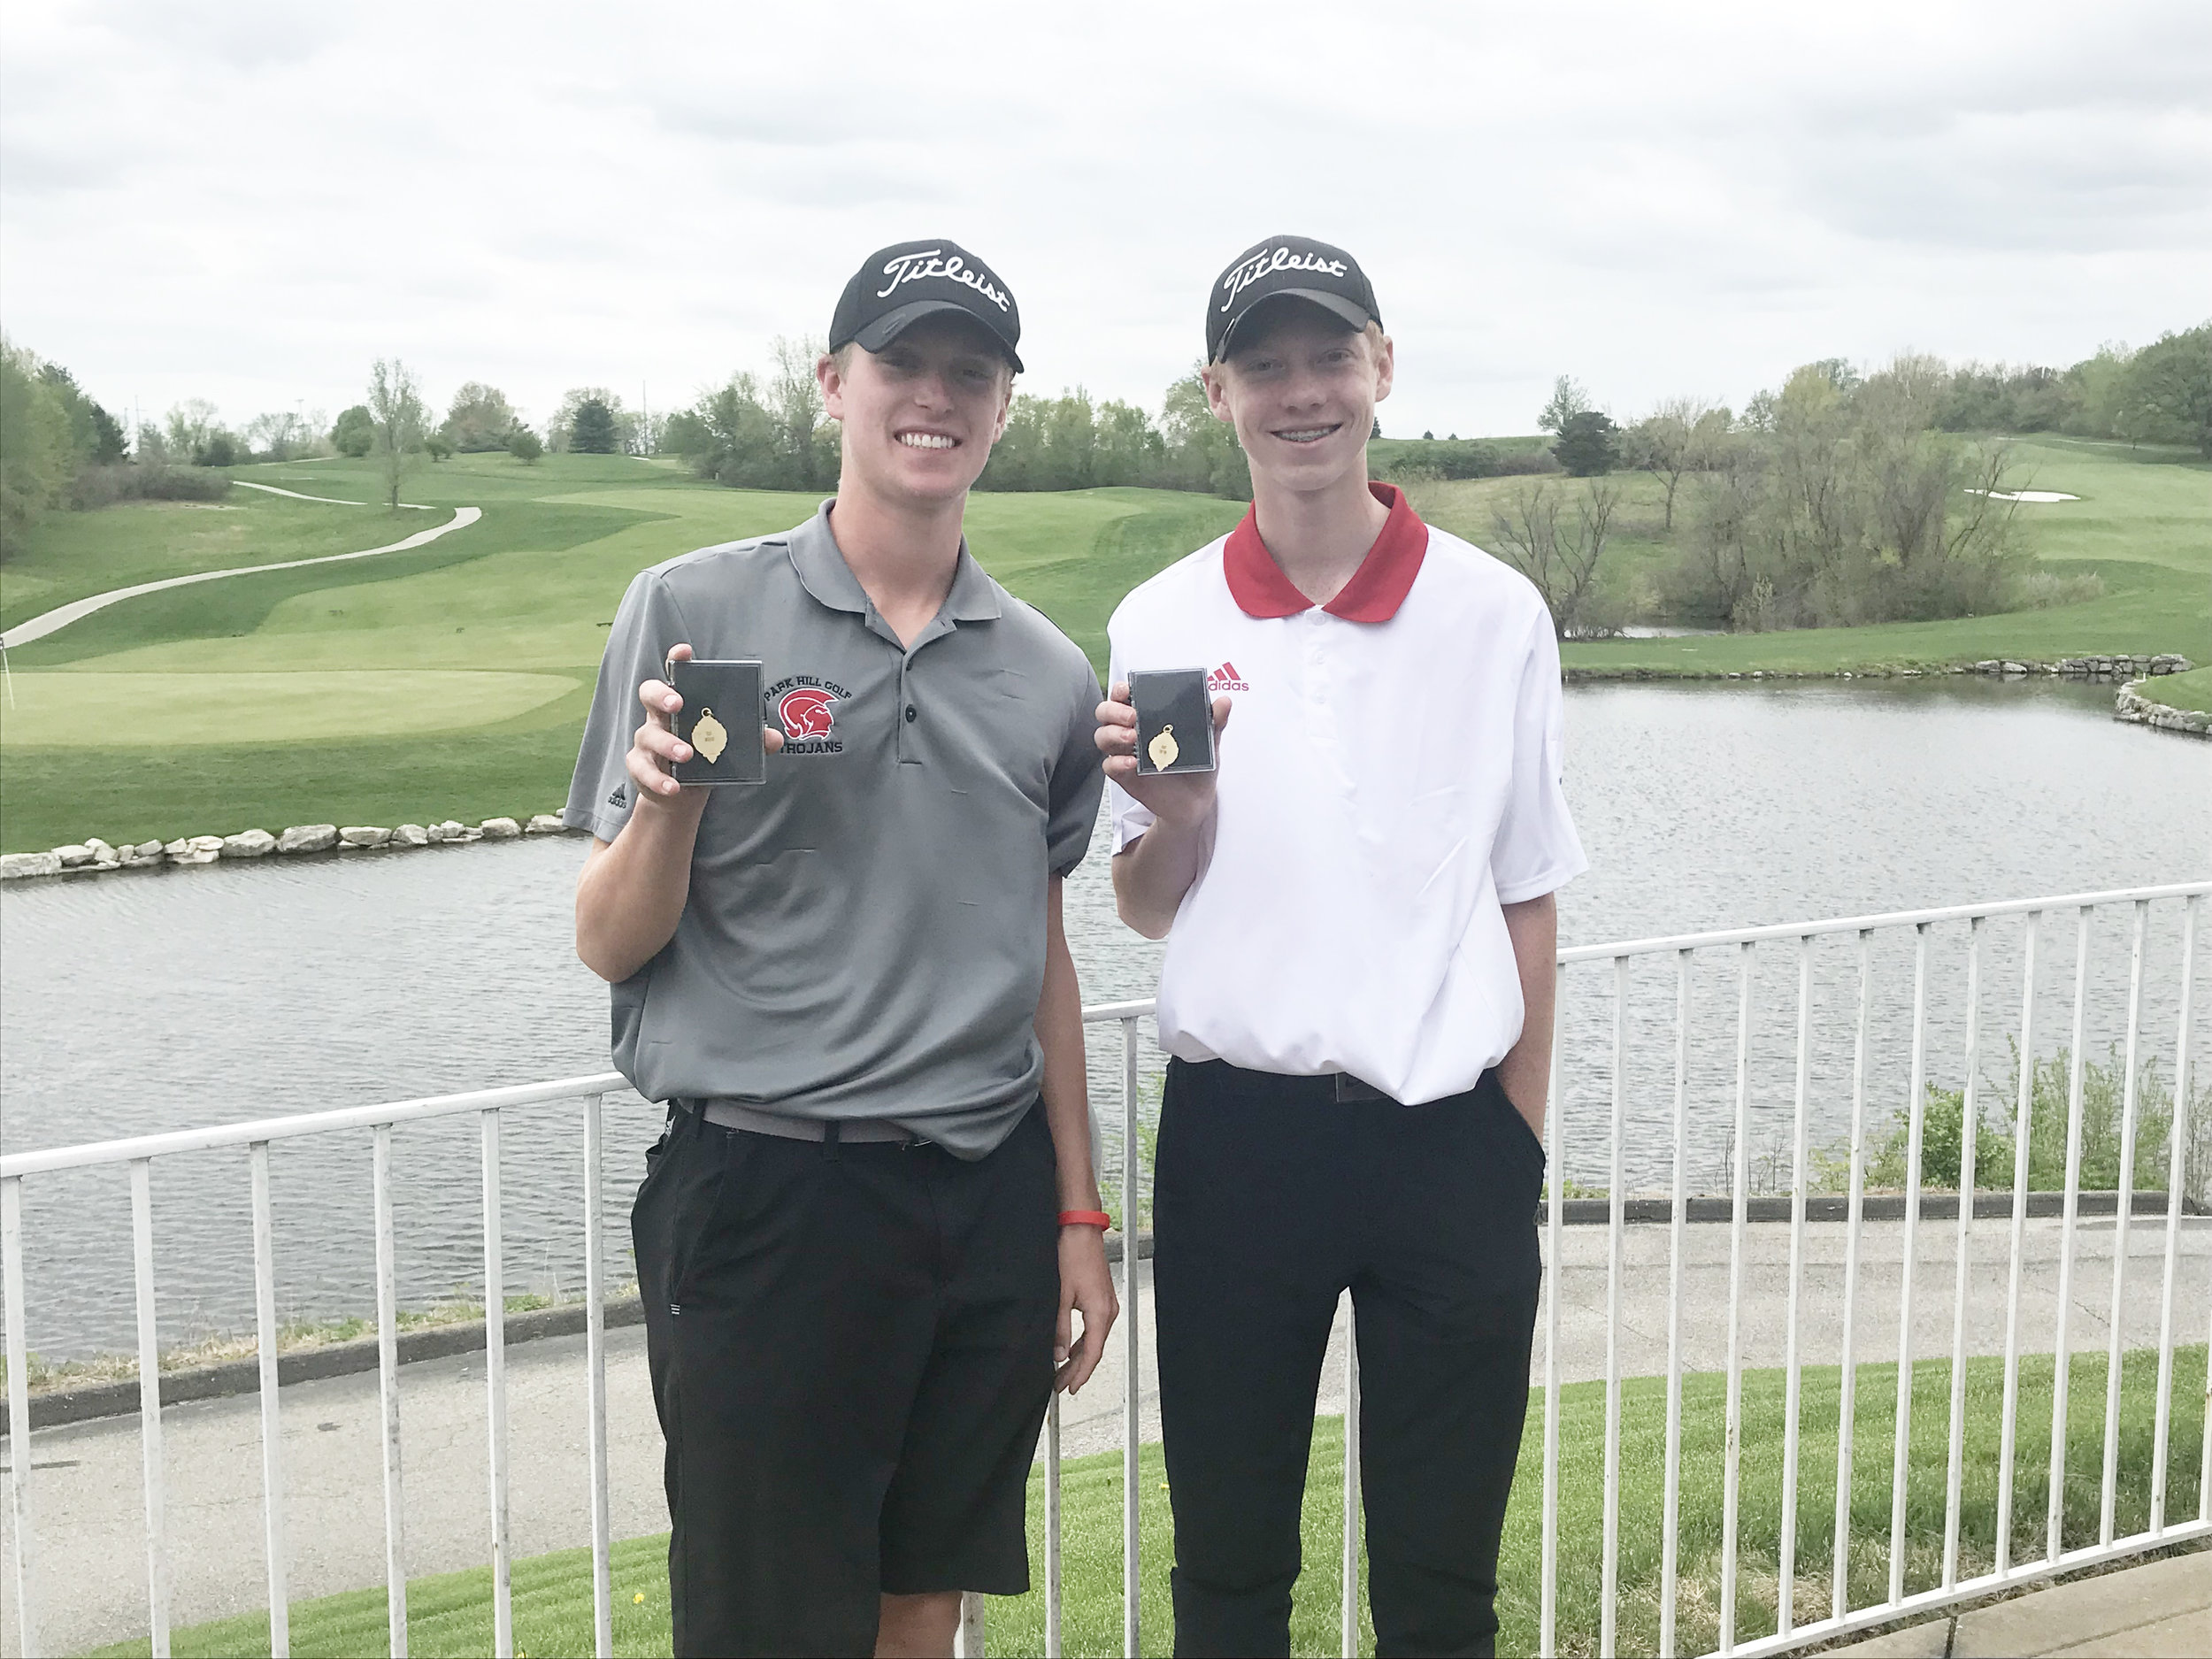 Submitted photo Park Hill's Ryan Graves, left, and Grant Schumacher, right, earned all-conference medals from the Suburban Conference Gold Division championship held on Monday, April 22 at Adams Pointe Golf Course in Blue Springs. Graves won the title after a tiebreaker.